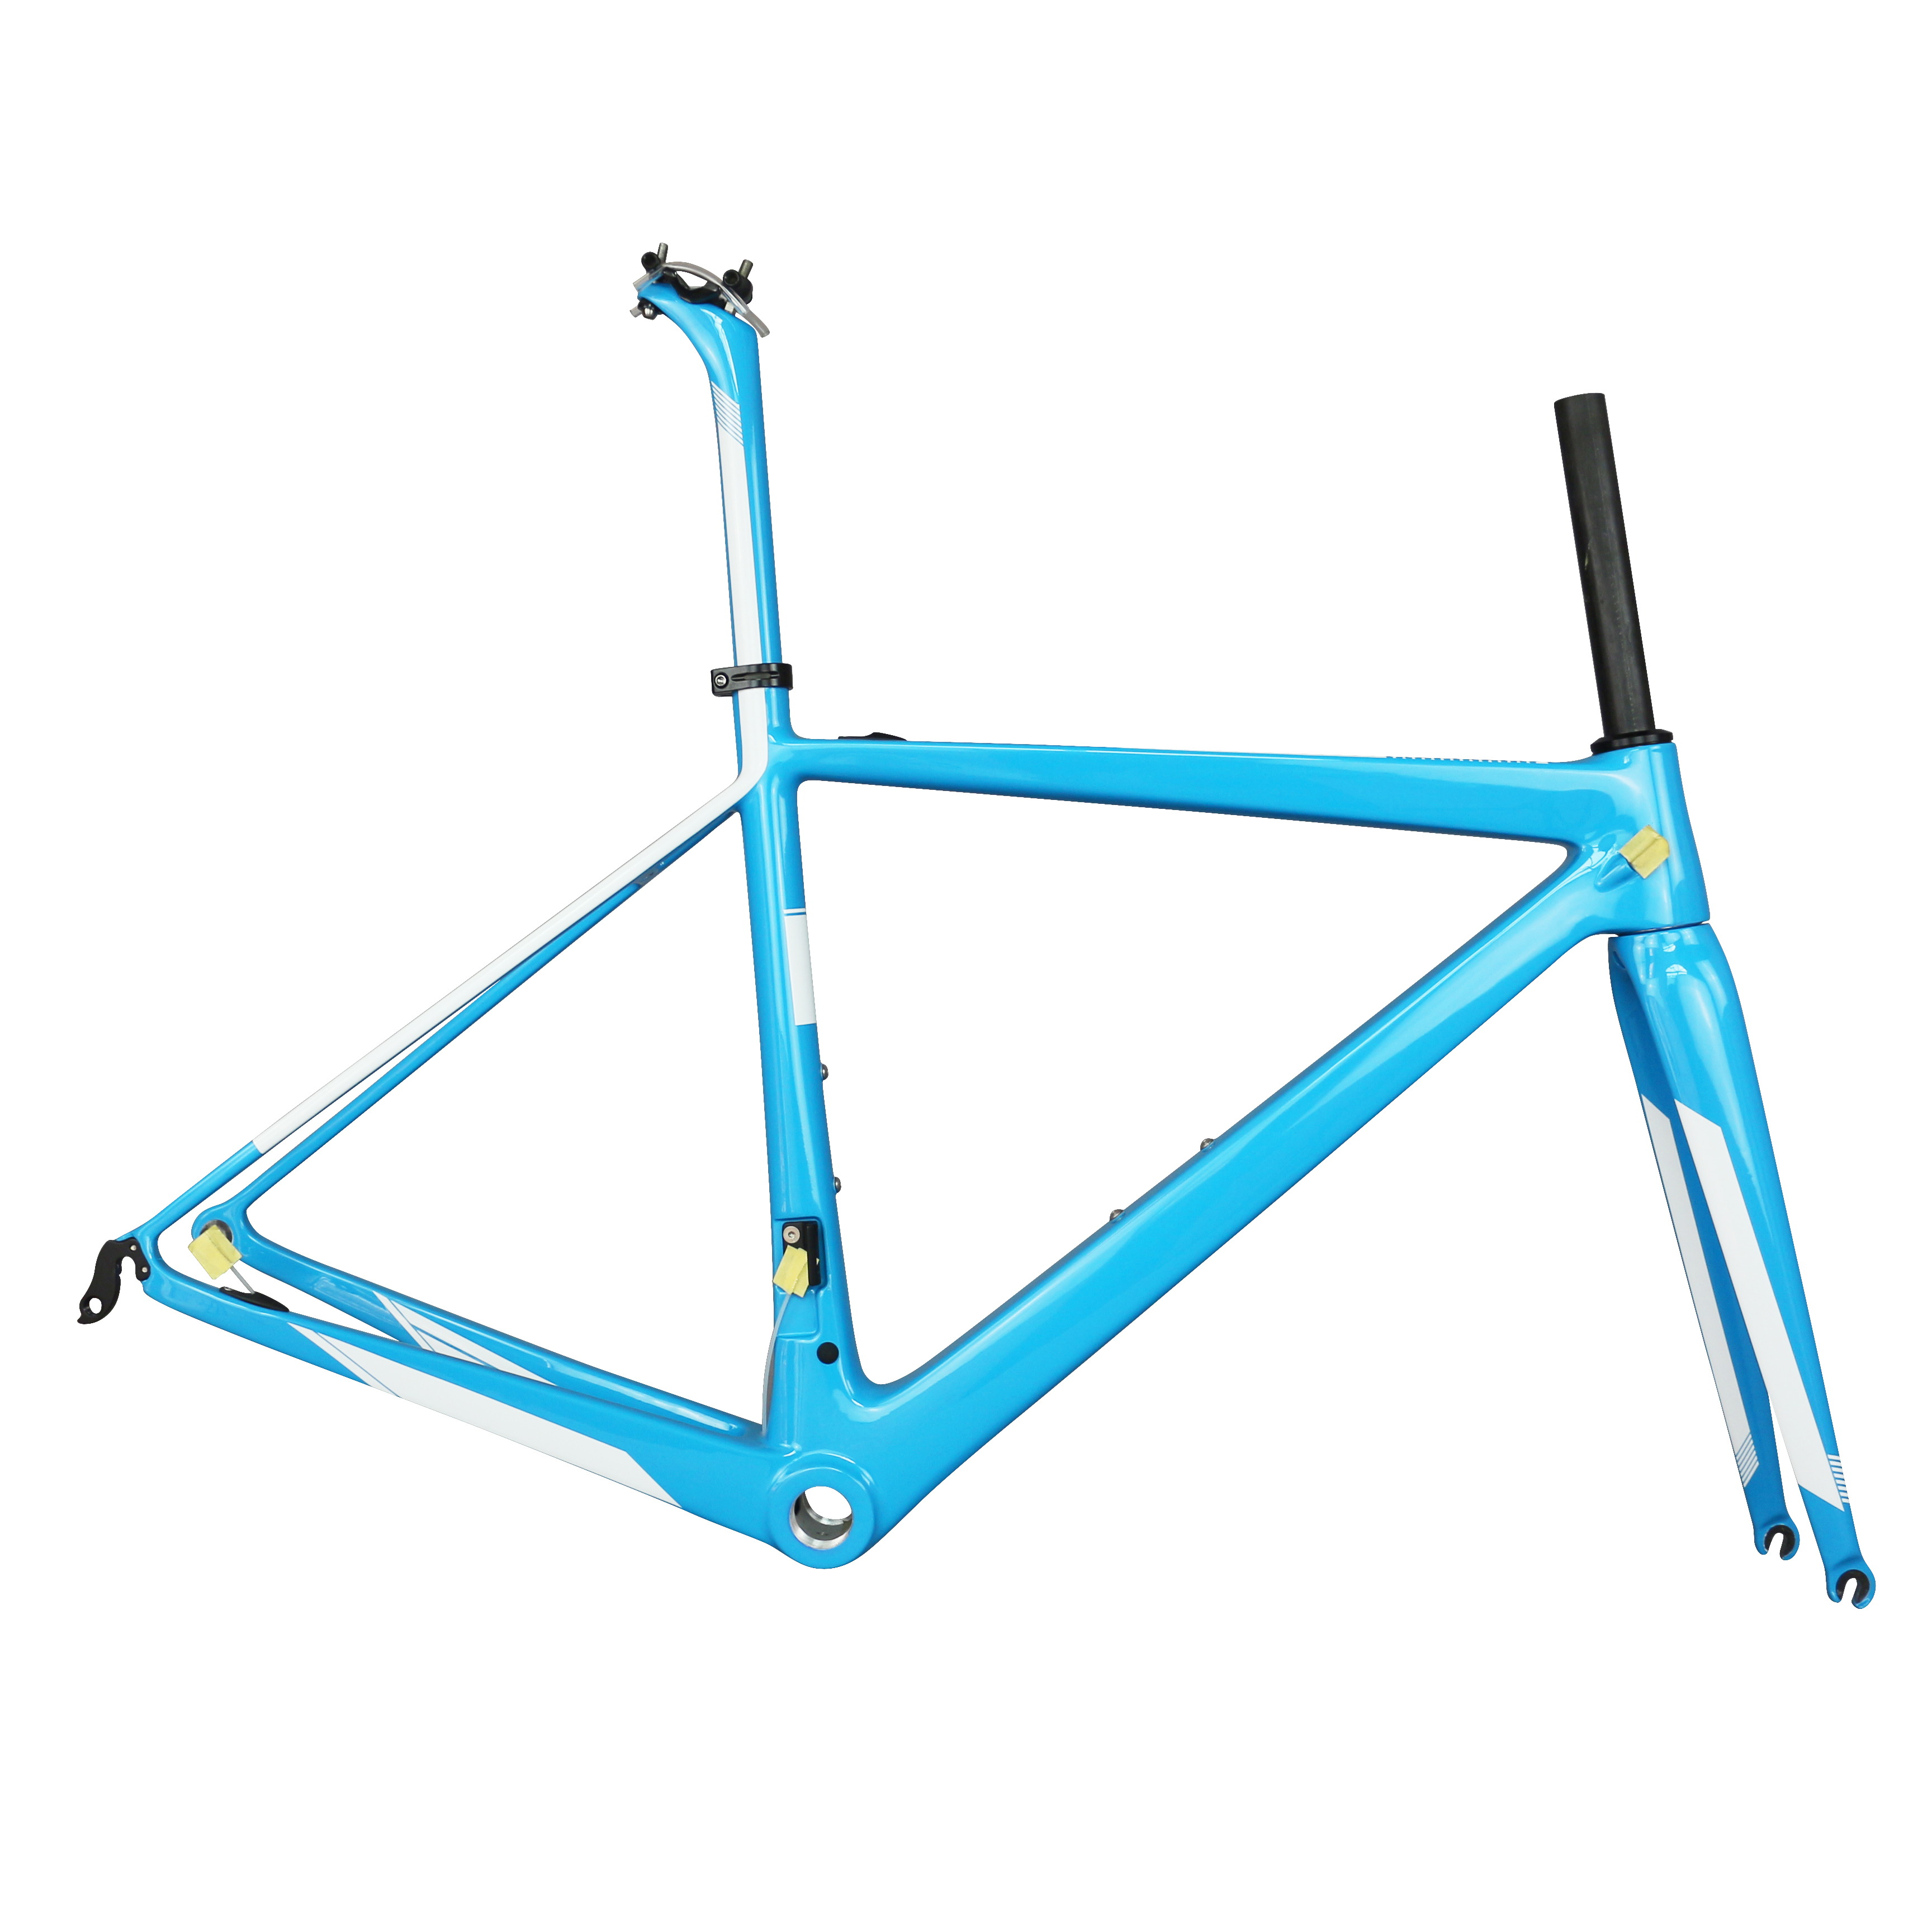 2019 New Arrivals Toray Carbon Fiber T1000 UD Weave  Bicycle Frame Glossy Blue Frame FM686 Warranty 2years